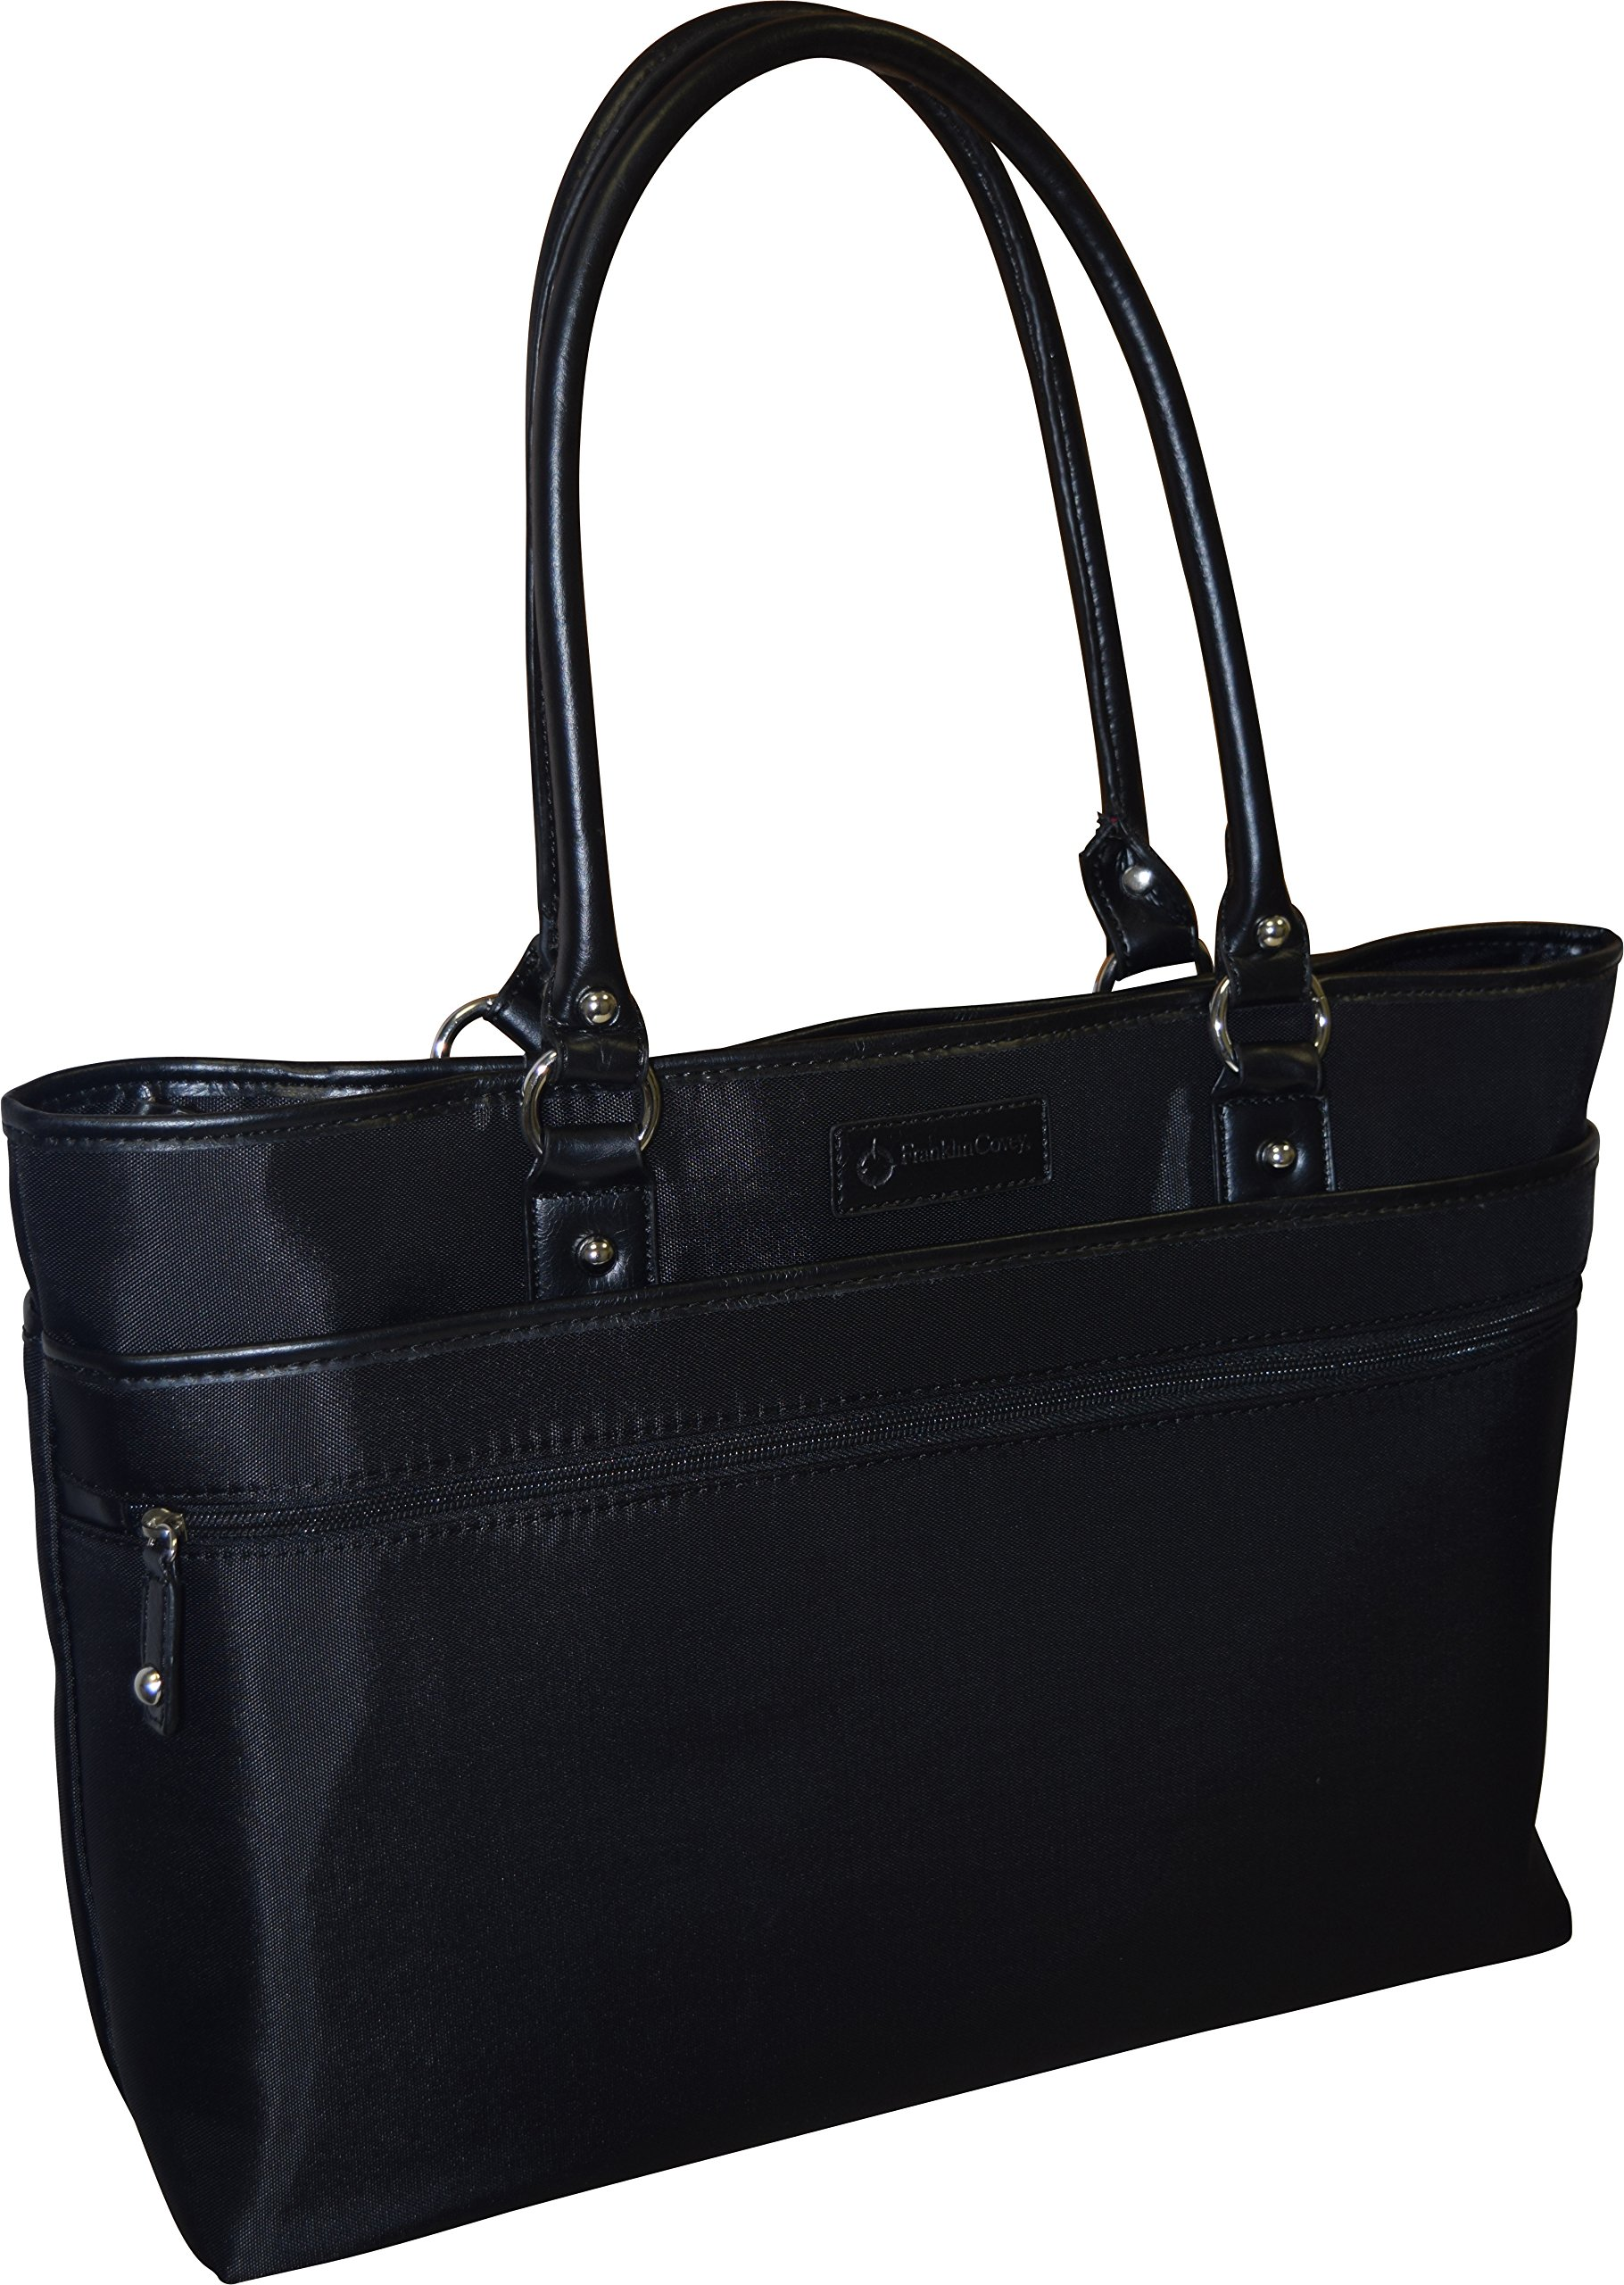 Franklin Covey Women's Business Laptop Tote Bag - Black